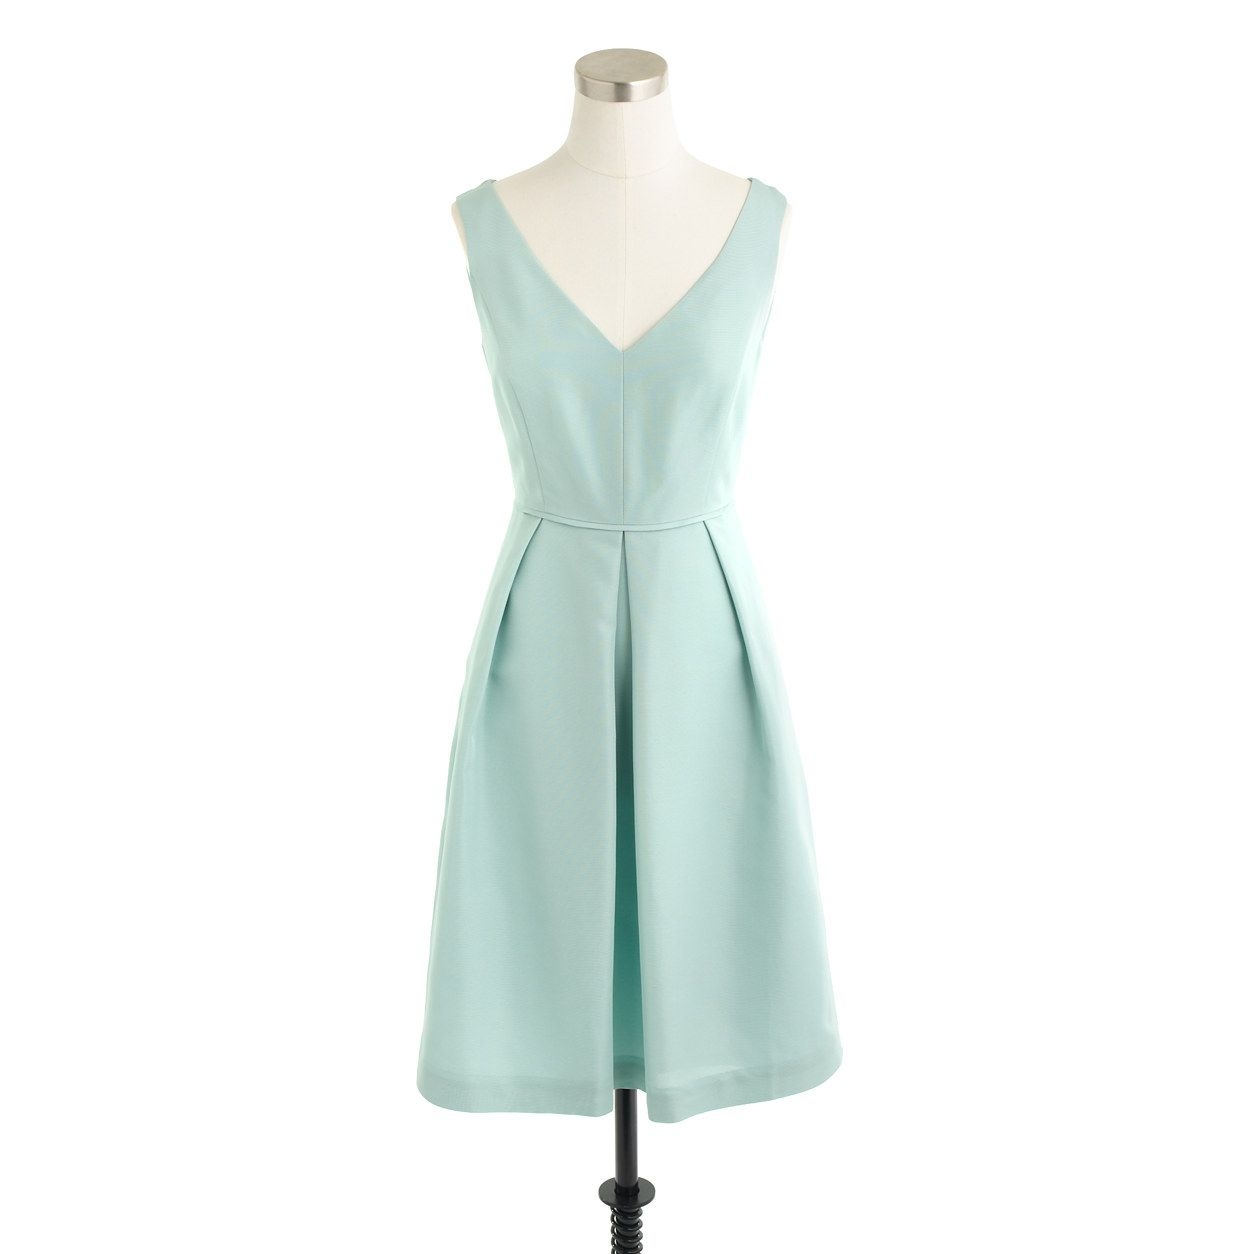 Kami dress in classic faille : sizes 16 to 20 | J.Crew | Wedding ...